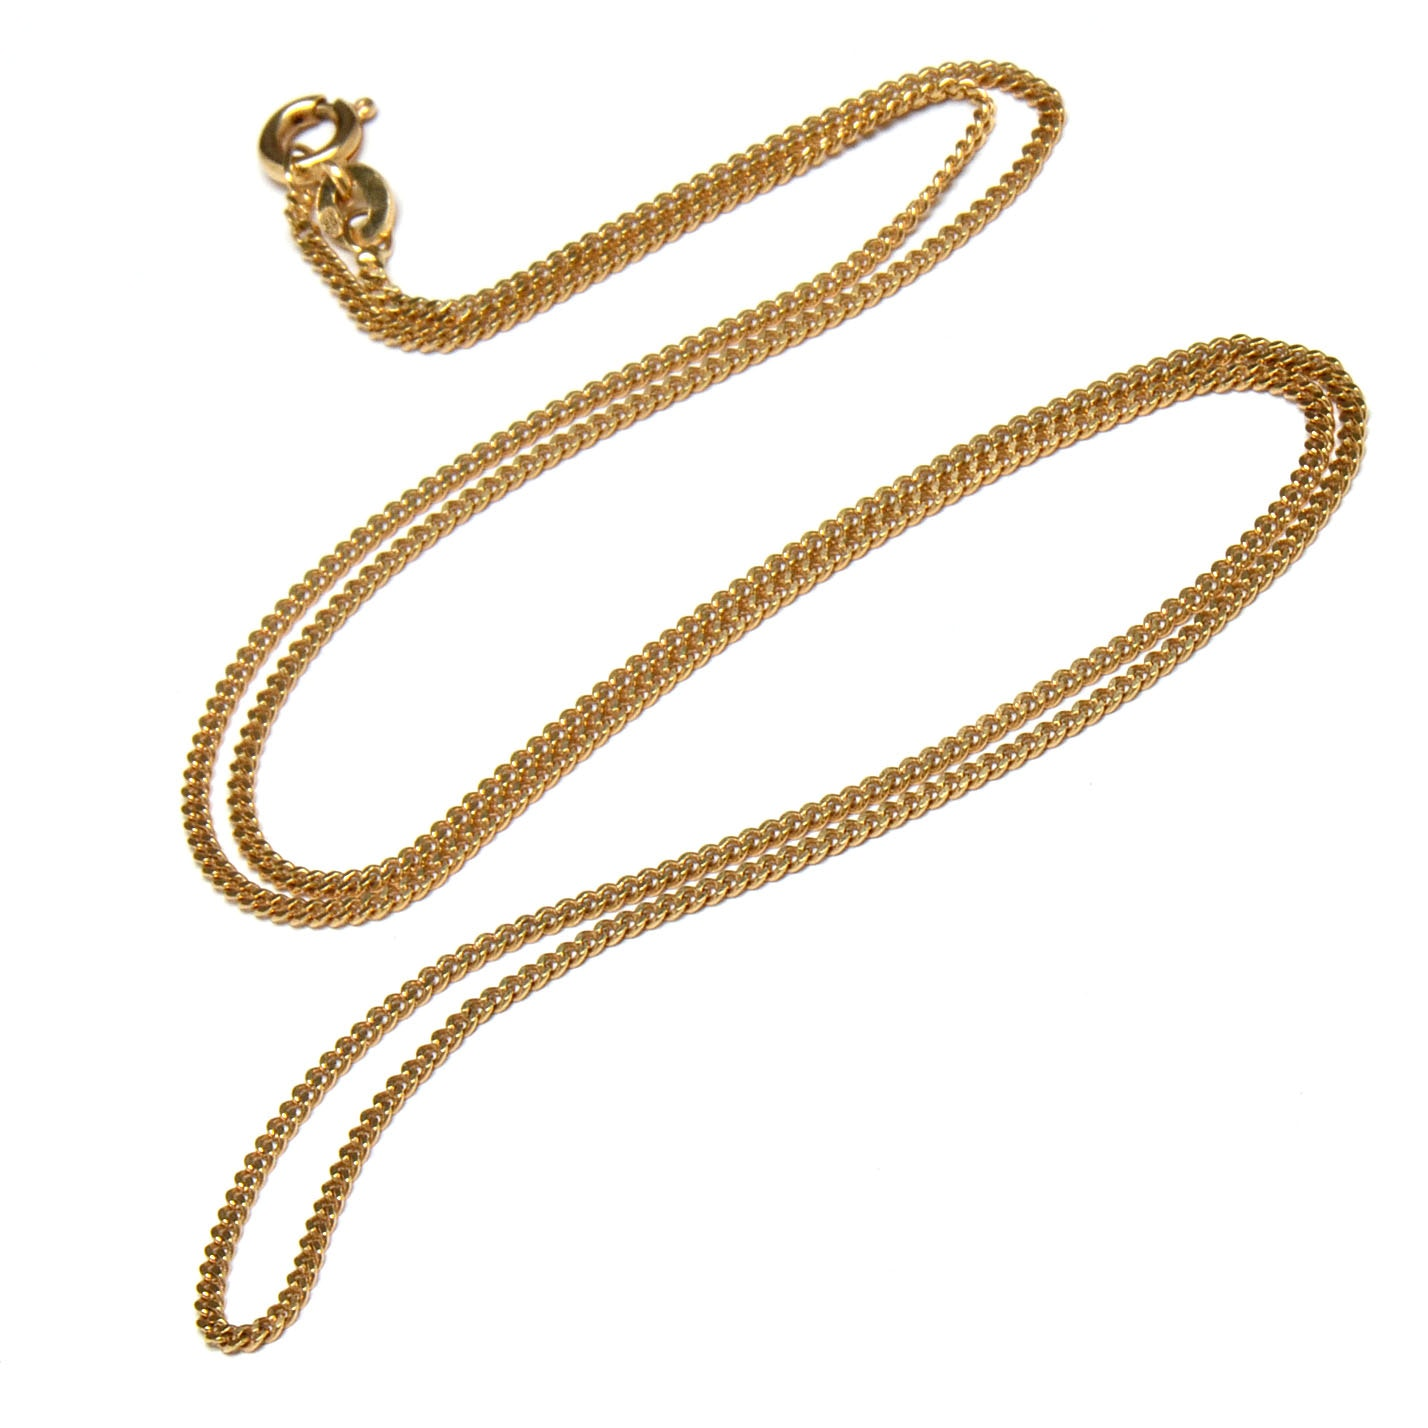 18K Yellow Gold Chain Necklace with Spring Clasp